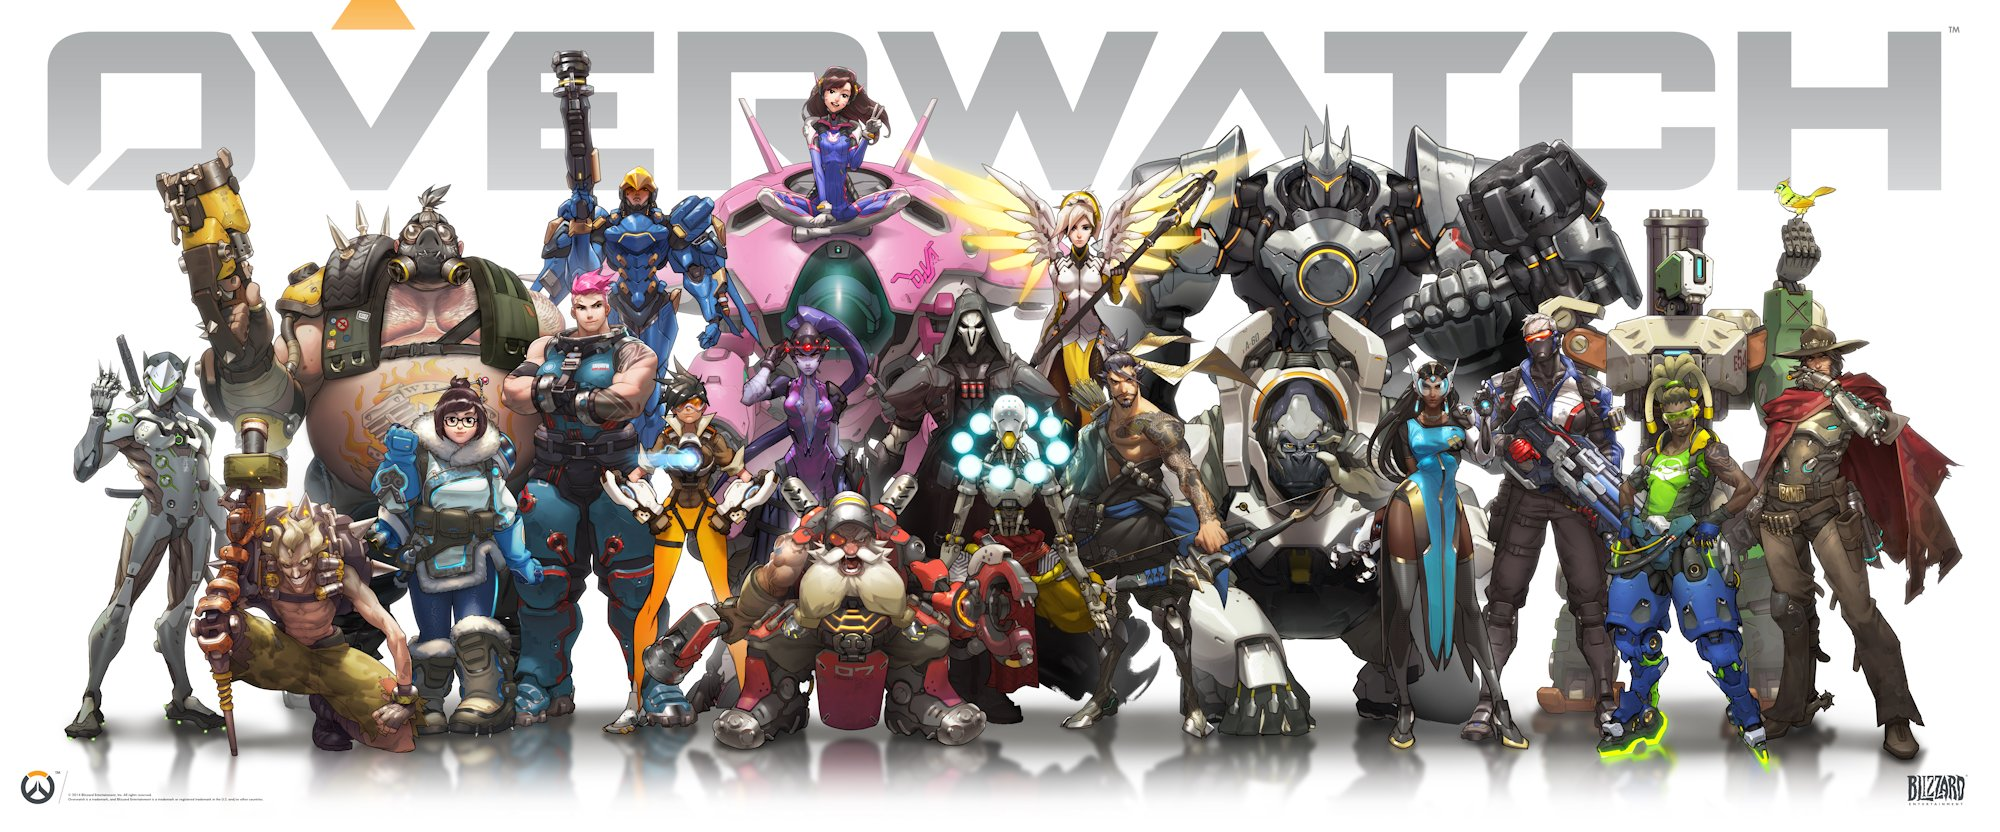 overwatch has been released in 3 editions overwatchtm overwatch game of the year edition and overwatch collectors edition a limited edition